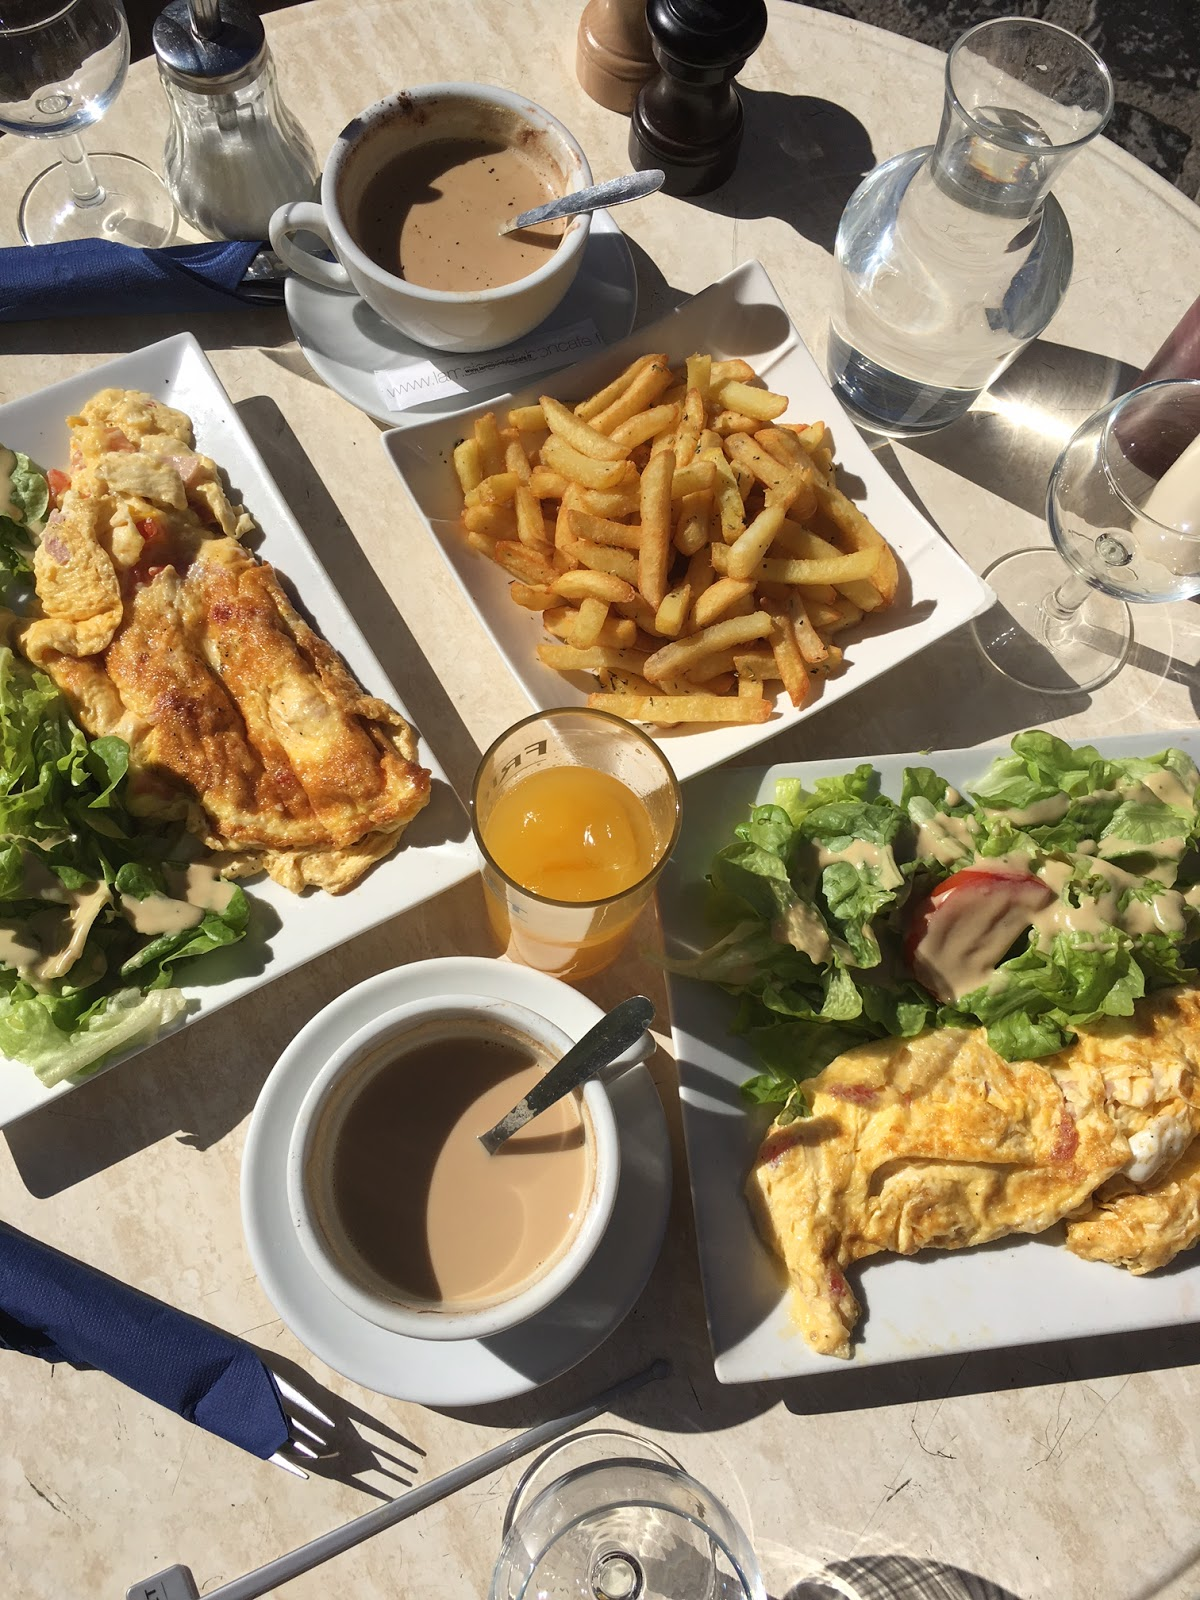 catholic singles in provencal Ricky's blue heaven is an authentic key west's favorite serving breakfast, lunch, and fine dining in the evenings, blue heaven is known for its caribbean flavors, local following, and long-time key west presence.